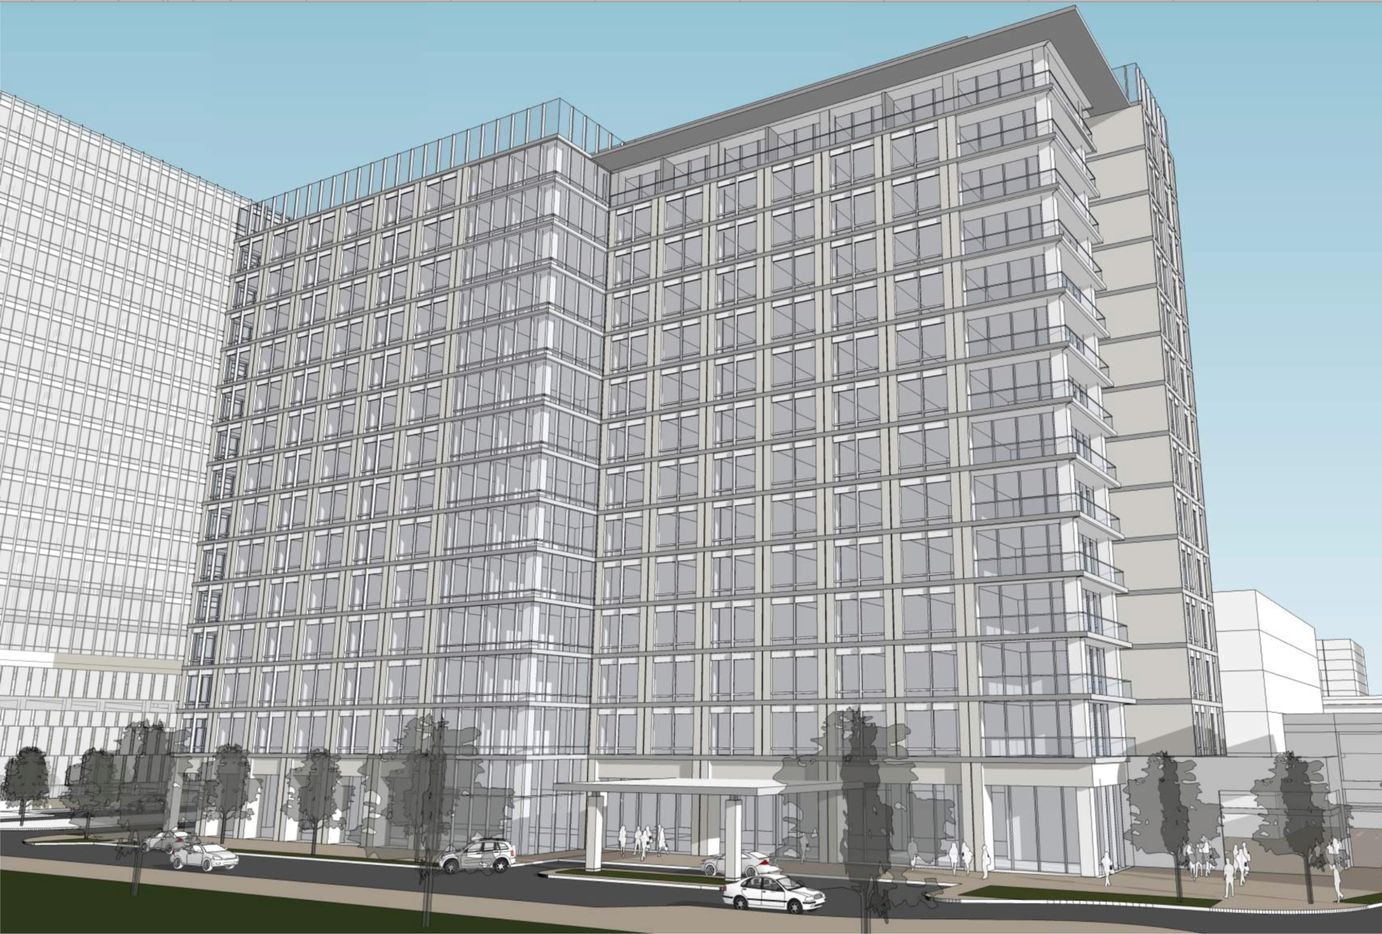 A high-rise hotel is planned as part of the Lesso America project in Frisco.